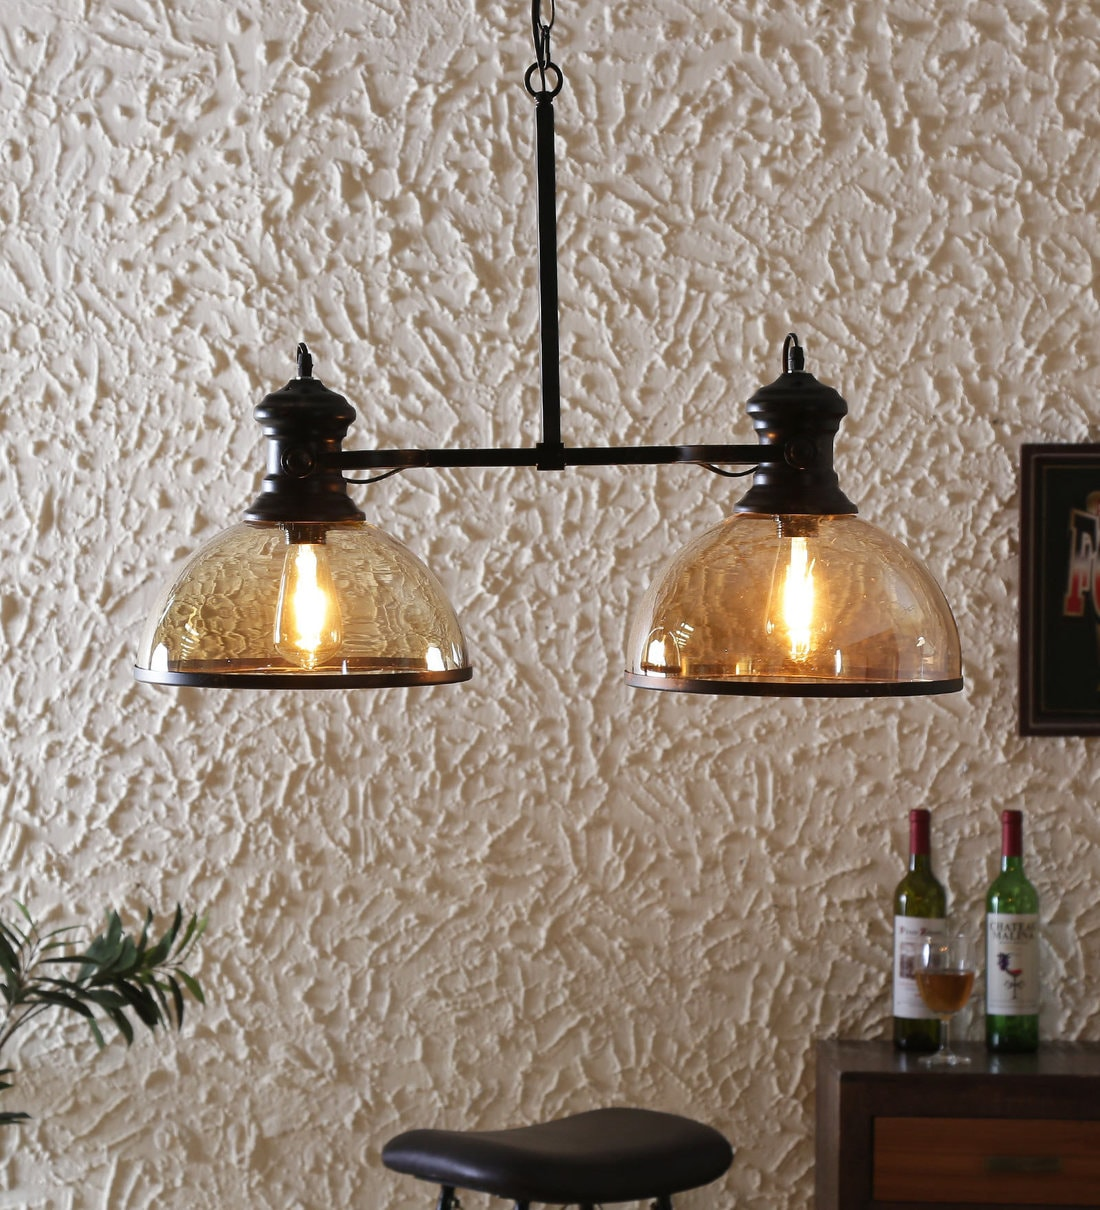 Buy Black Metal 2 Light Cluster Hanging Lights By Rustic India Online Contemporary Cluster Hanging Lights Ceiling Lights Lamps Lighting Pepperfry Product